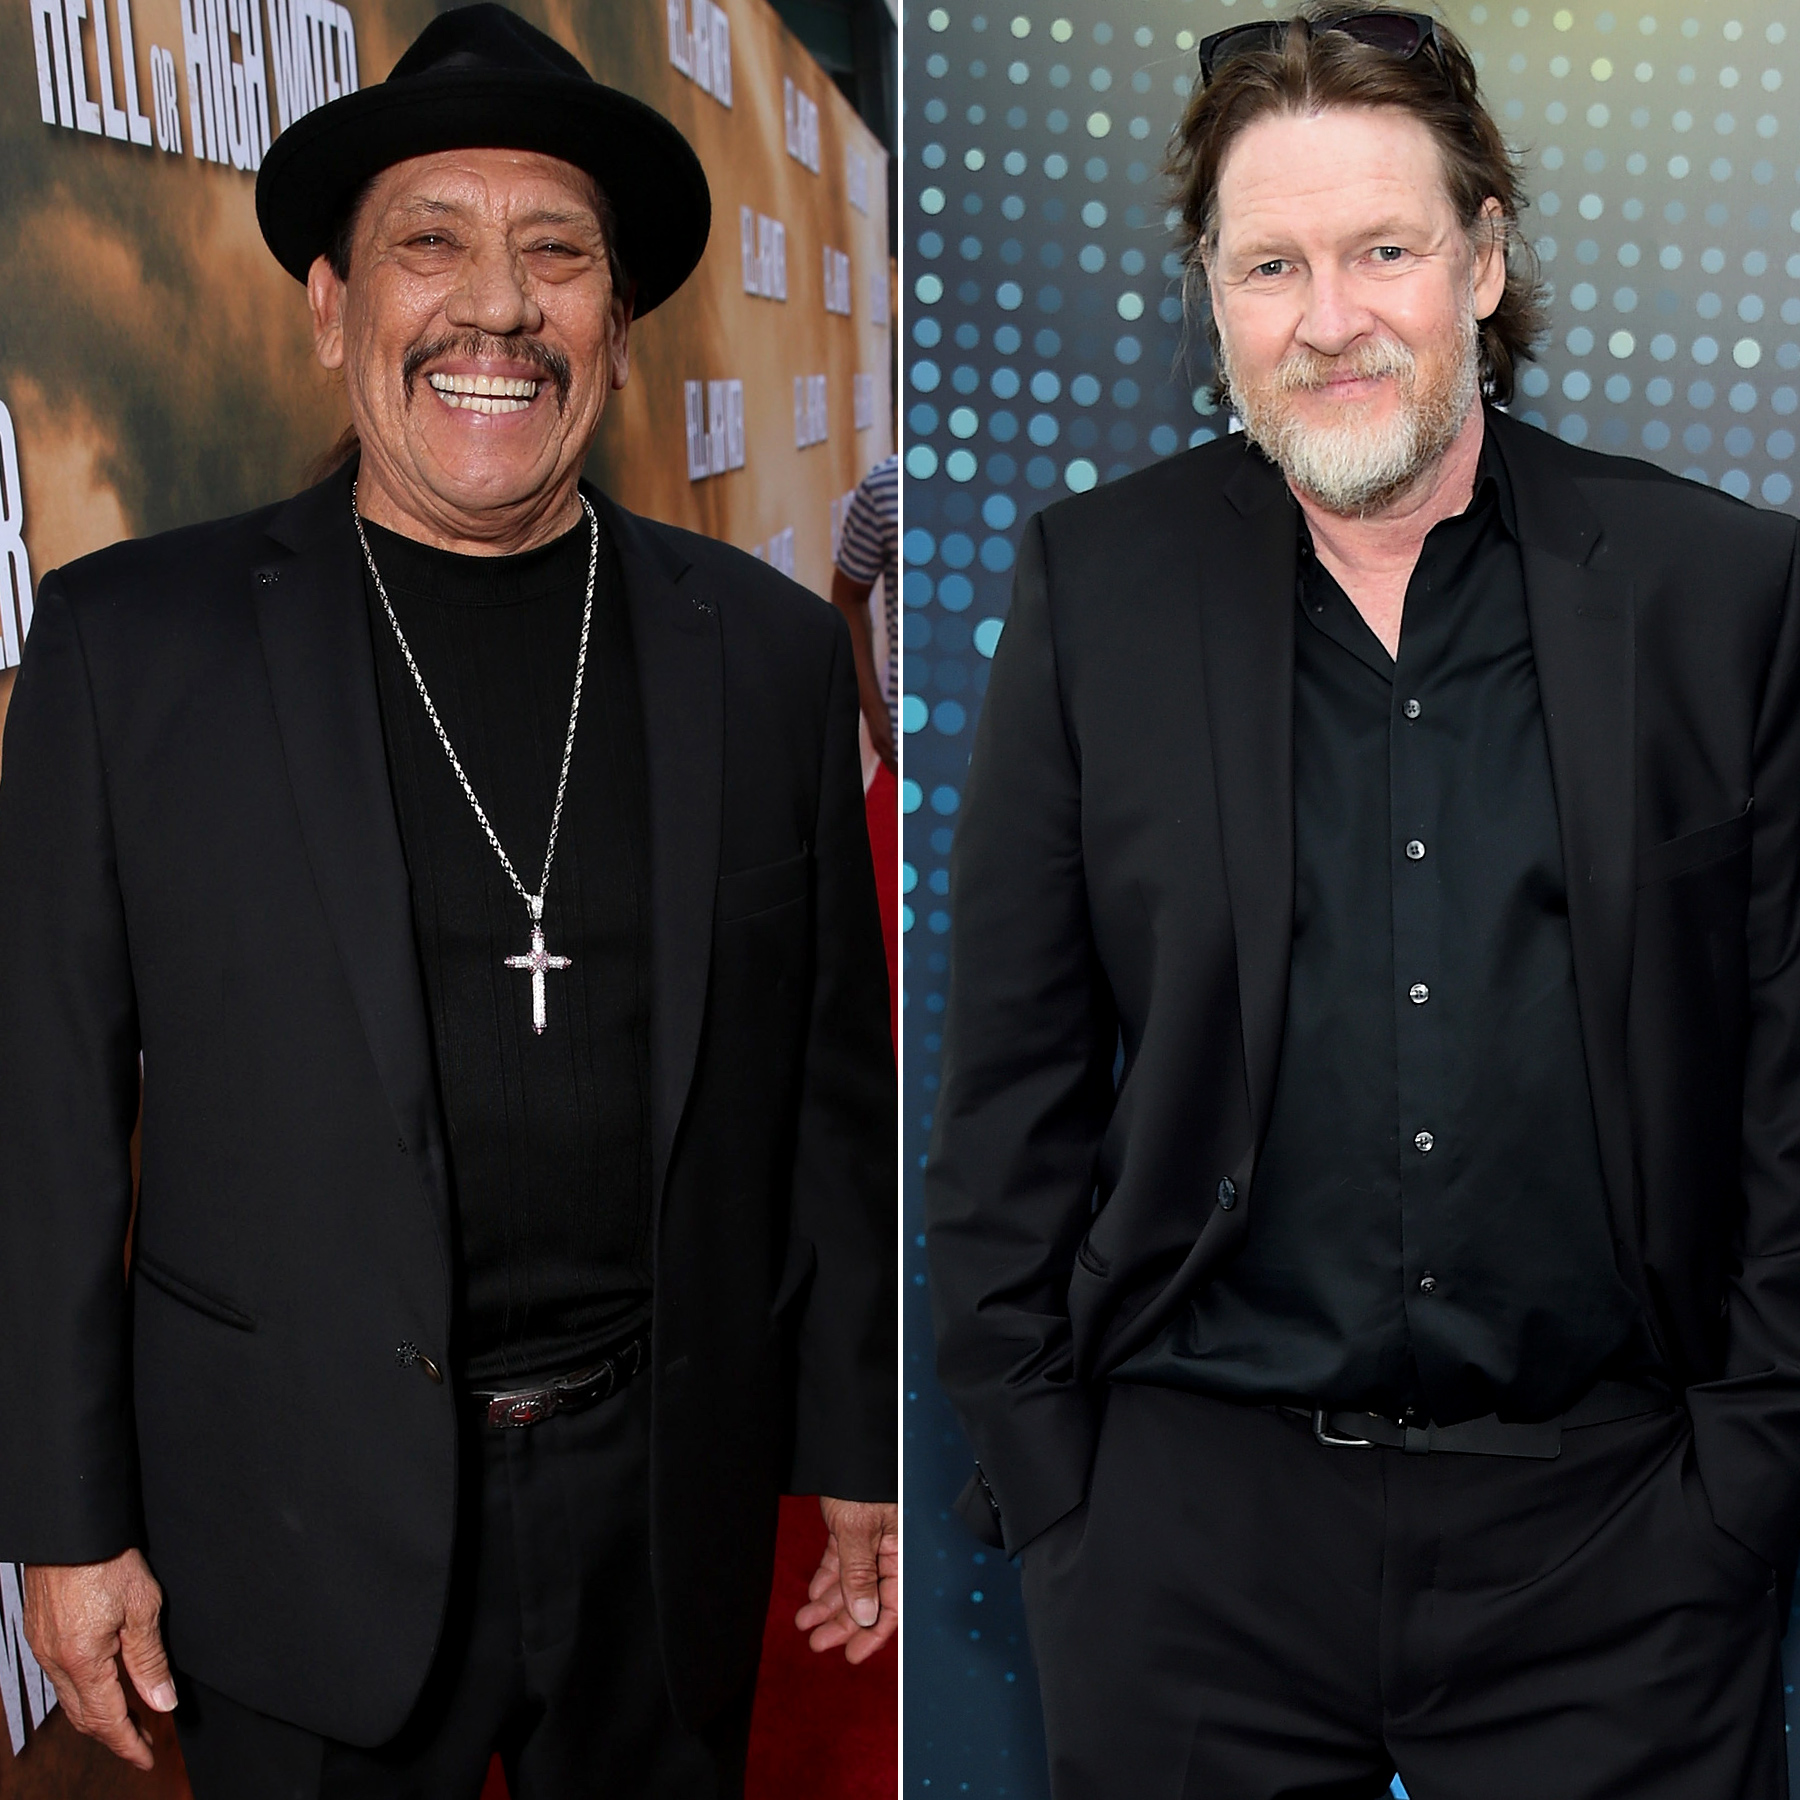 Danny Trejo and Donal Logue